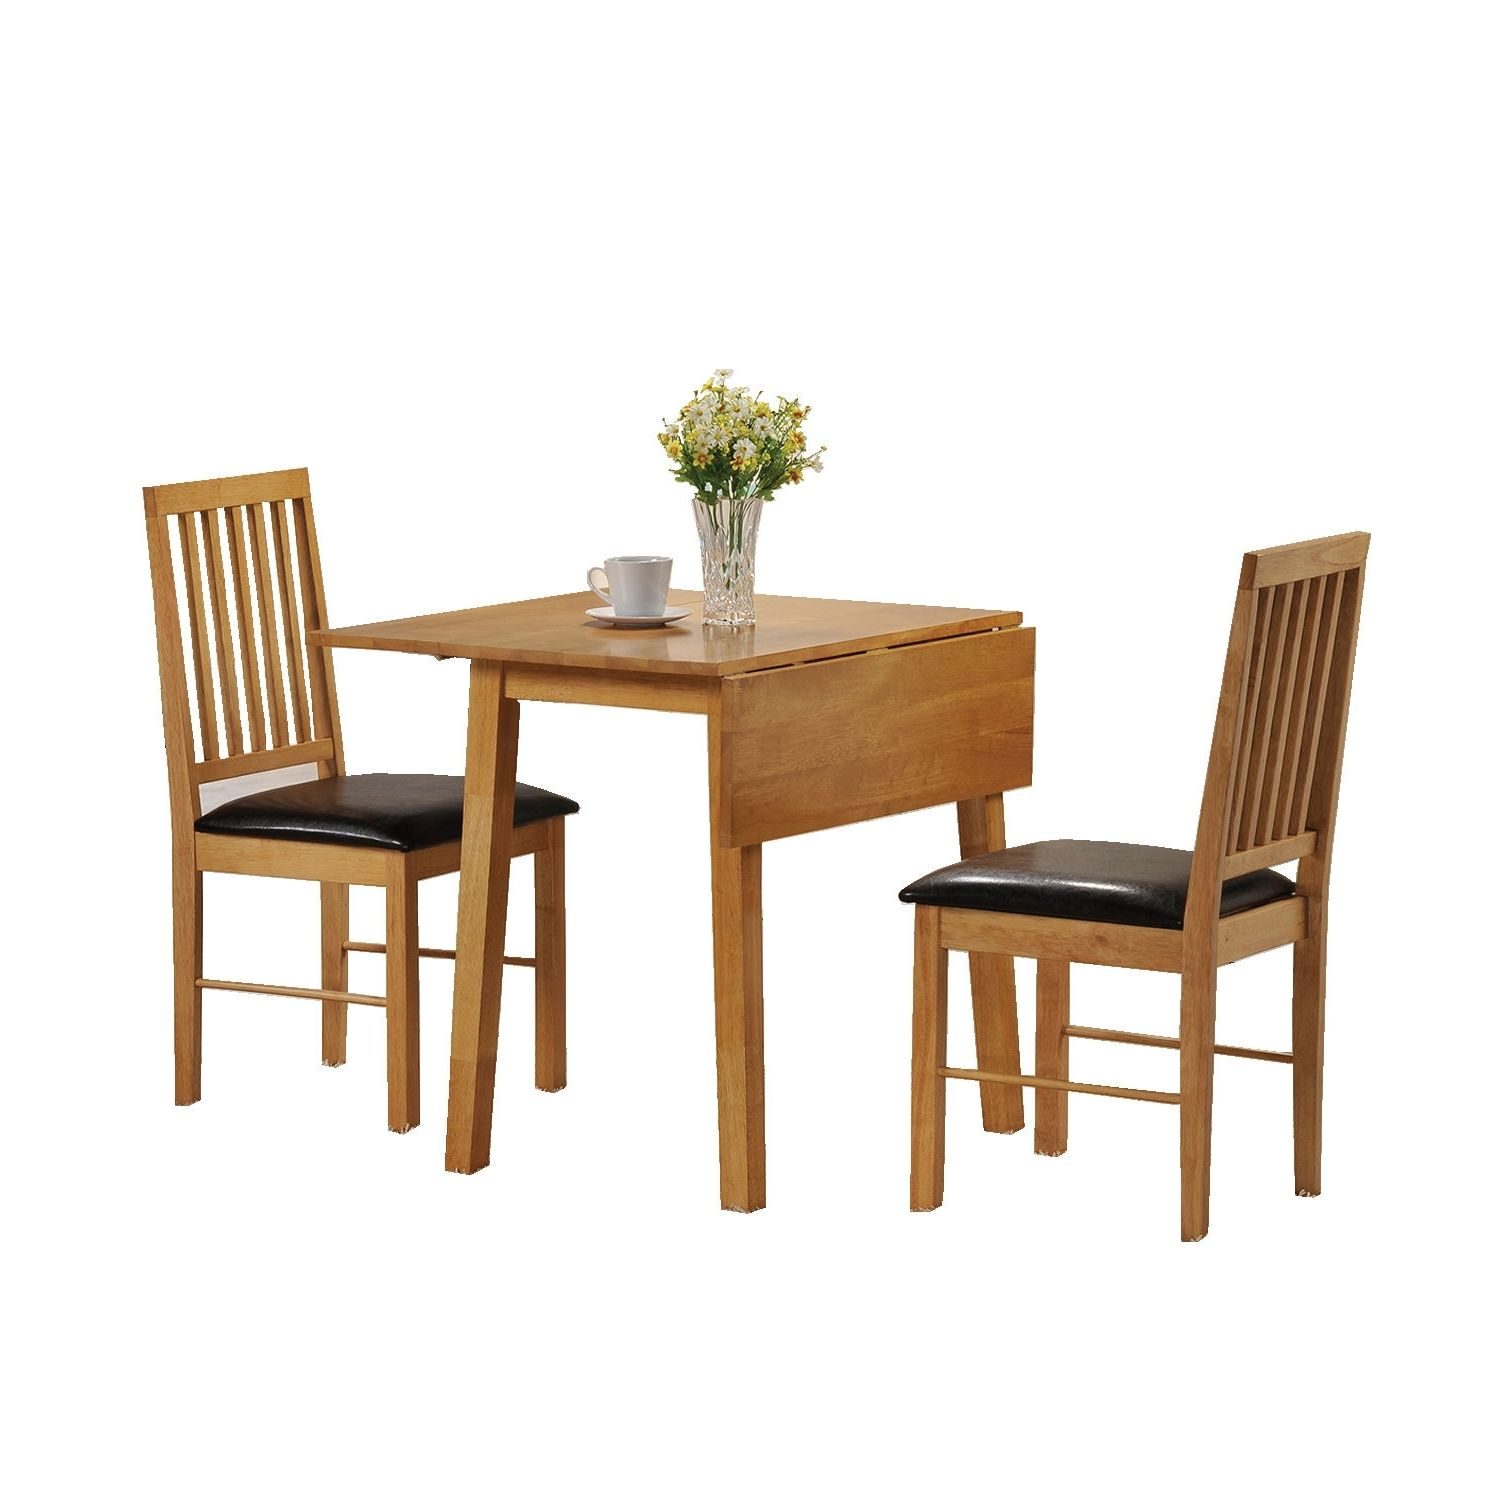 2 Person Folding Table And Chairs | Folding Chairs | Pinterest ...